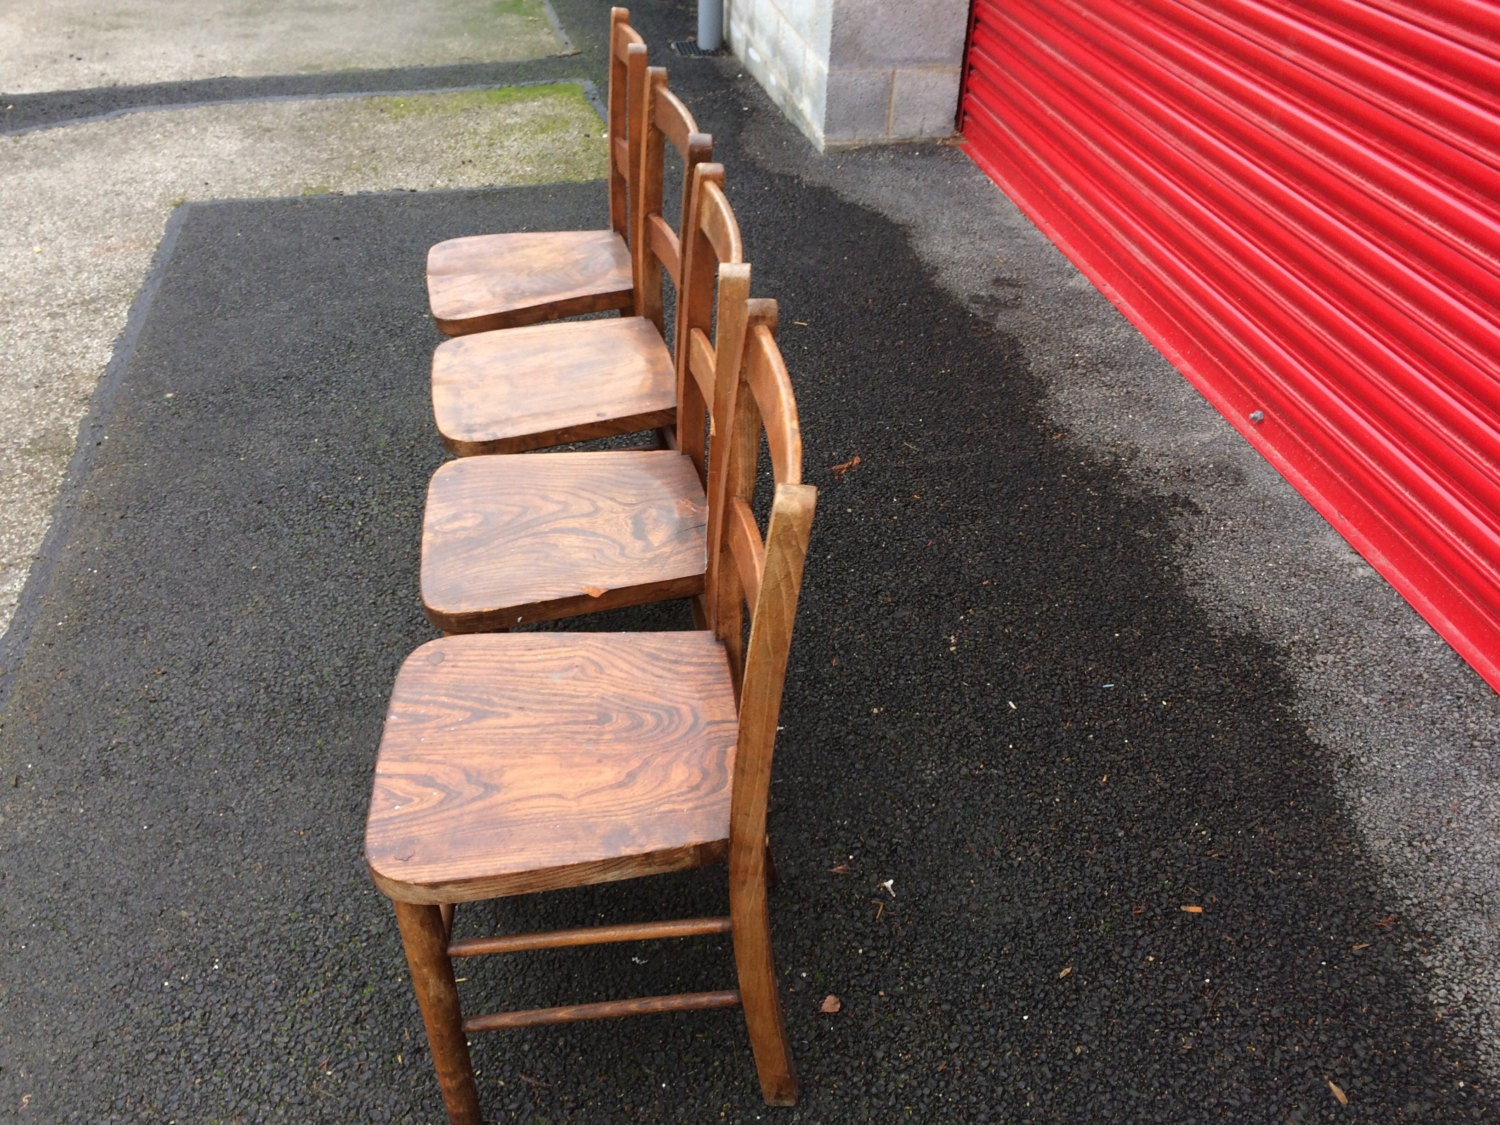 Churchchapel chairs